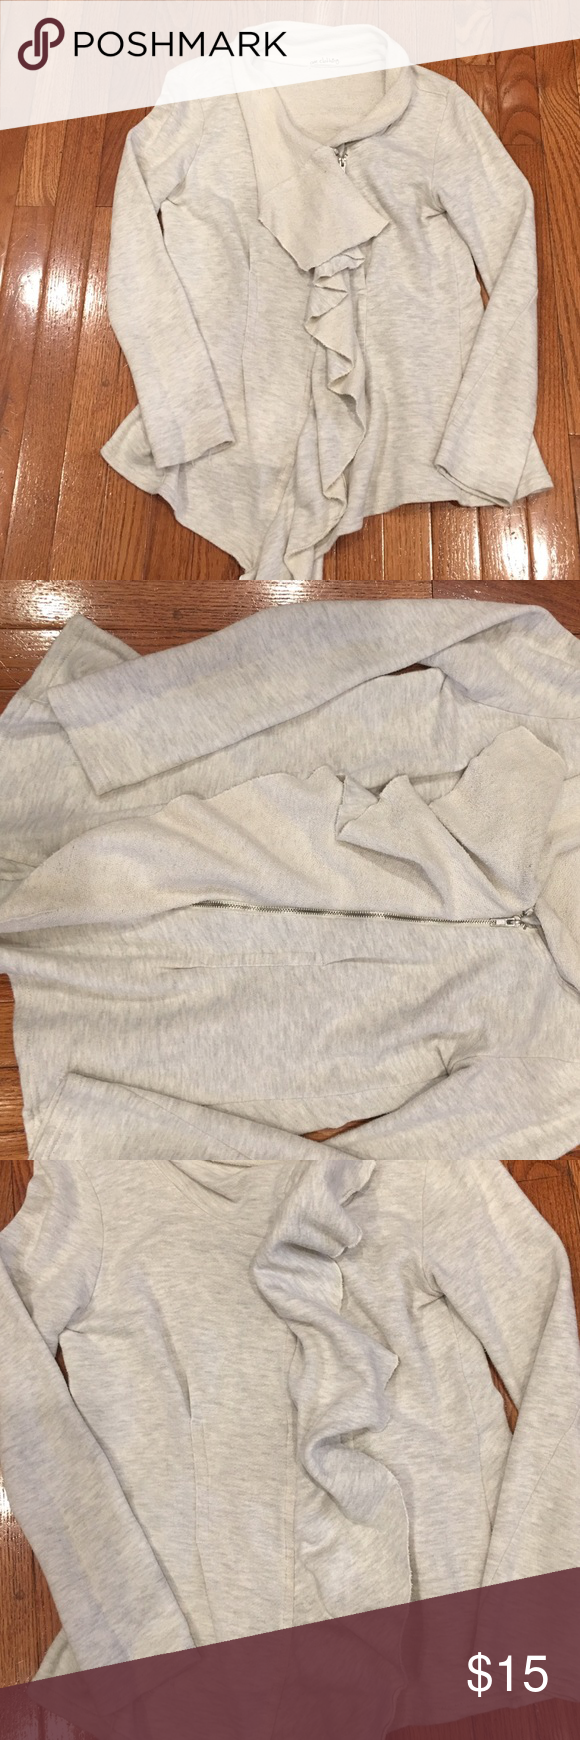 Sweatshirt jacket Lightweight sweatshirt material jacket. Ruffled front with silver zipper. Gathered in the back. Shown in picture #4. Gently used without stains or tears. Jackets & Coats